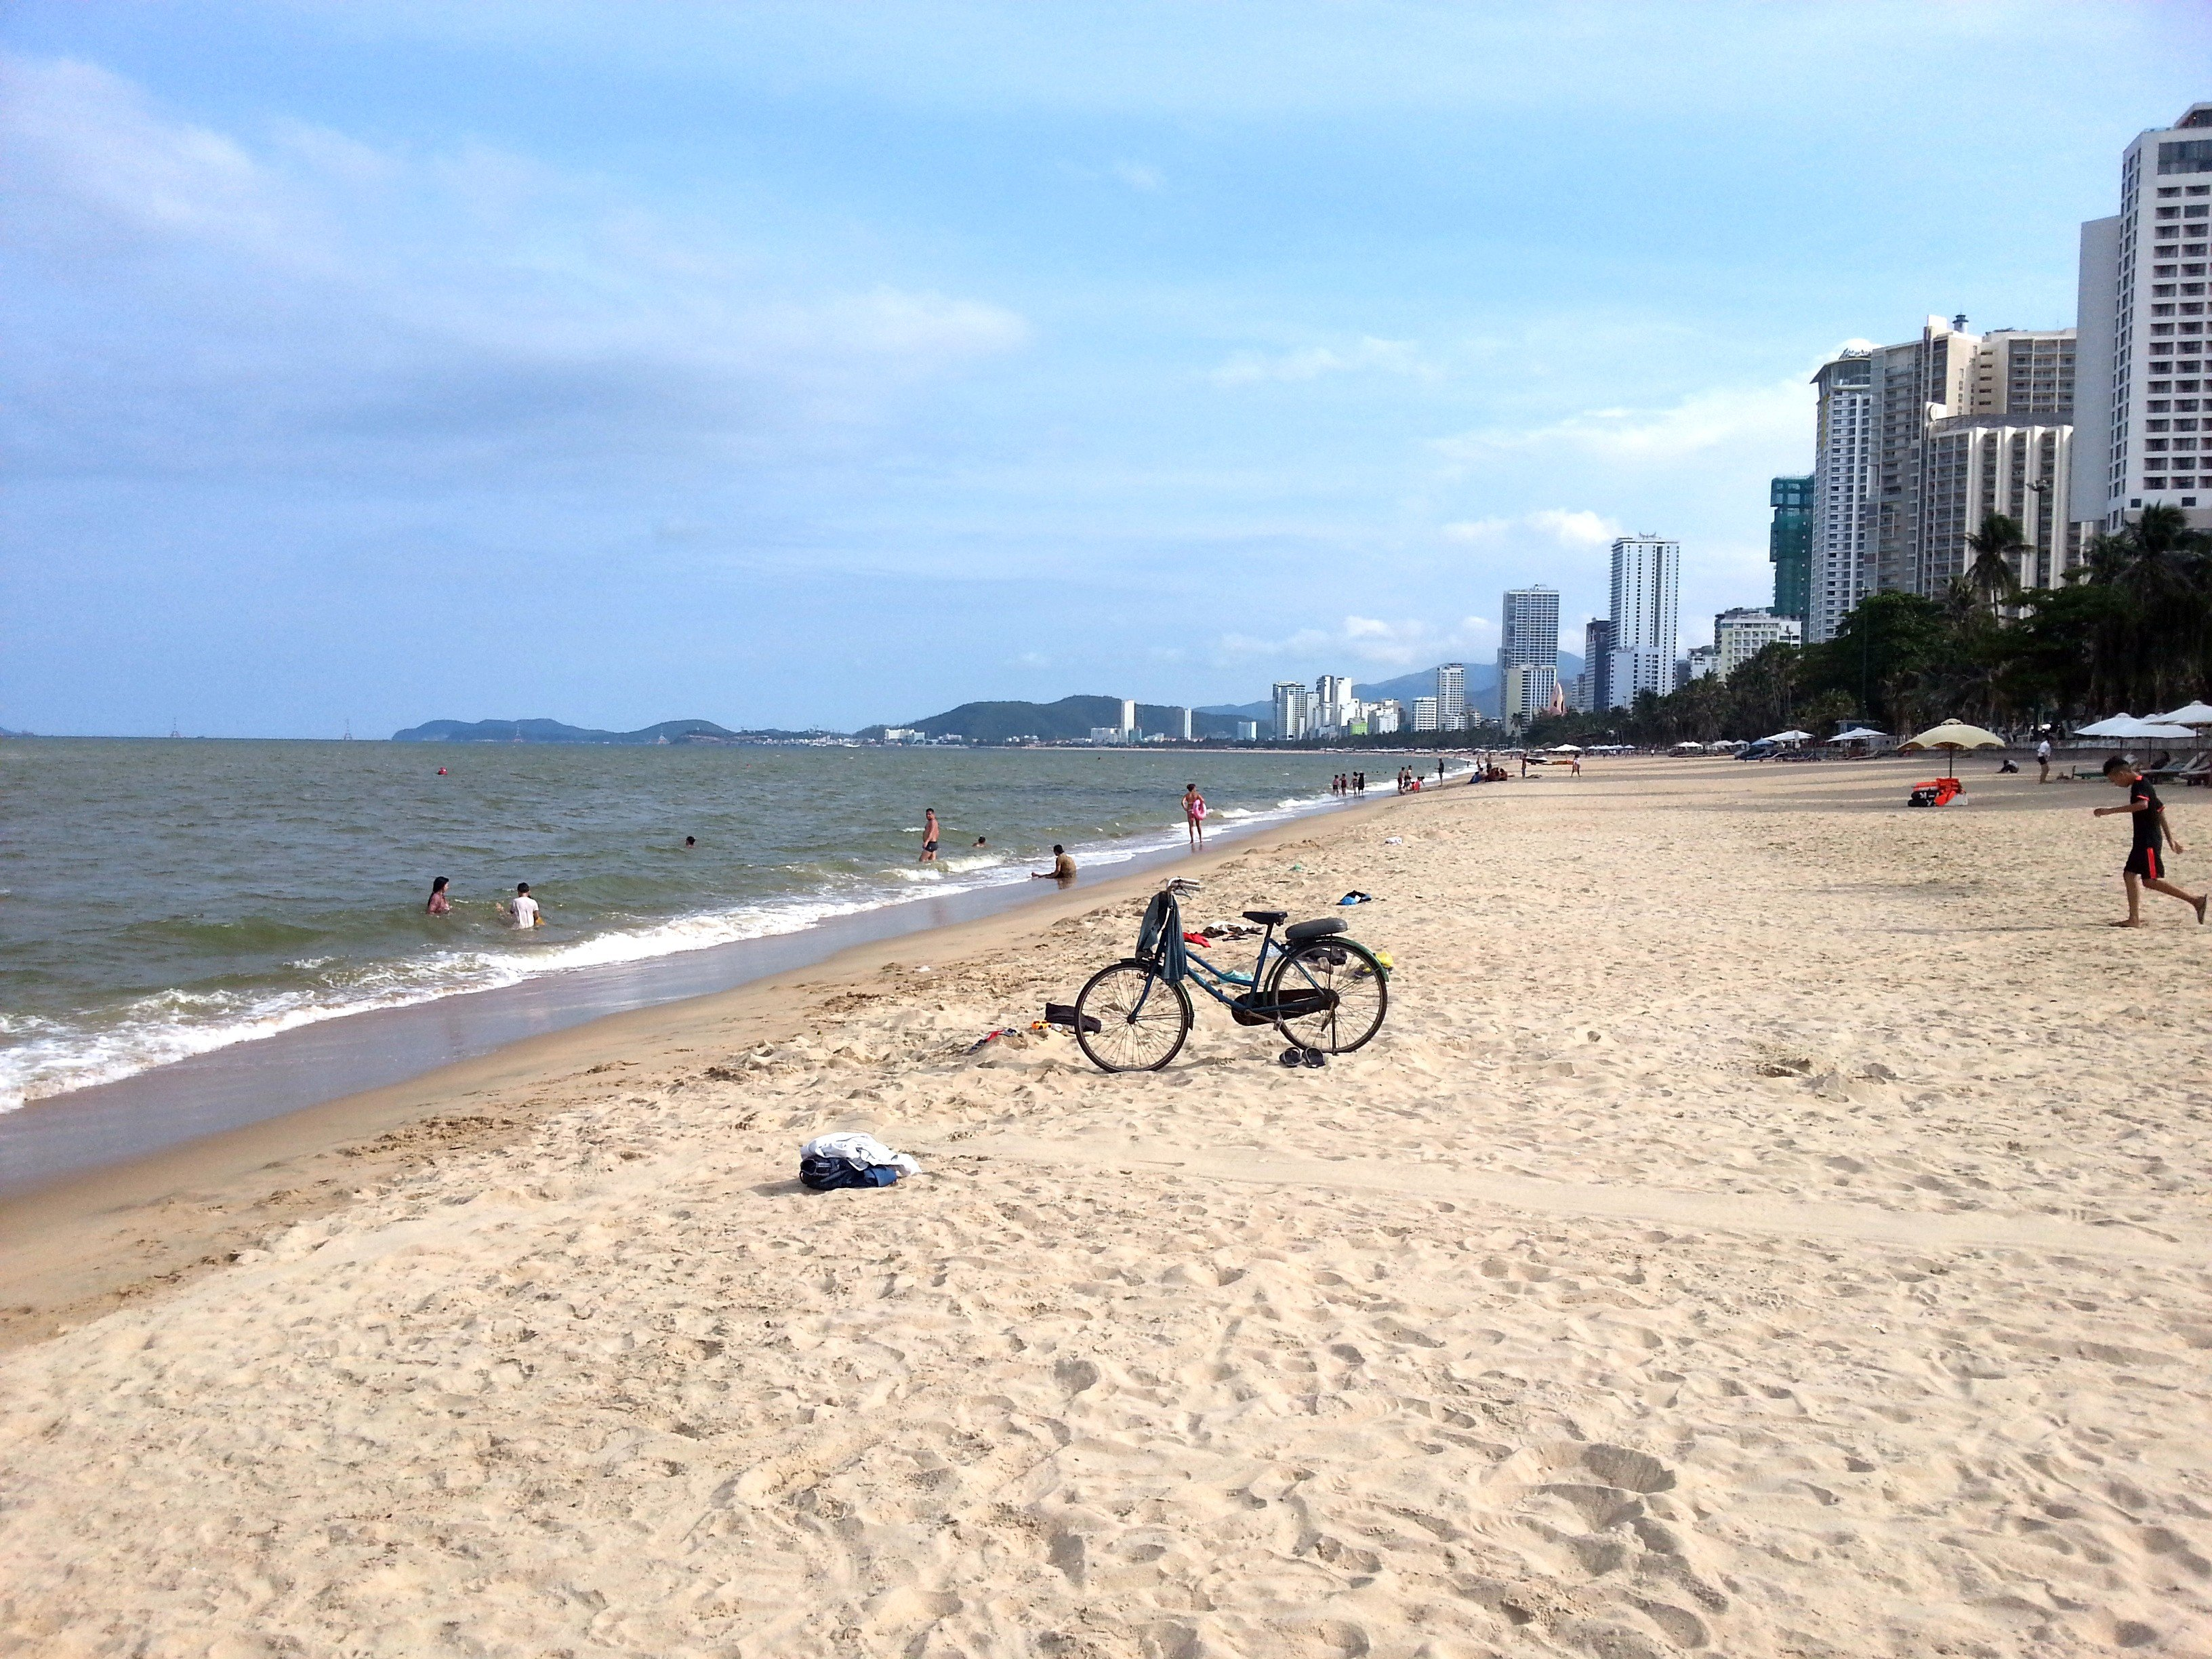 Looking south on Nha Trang Beach